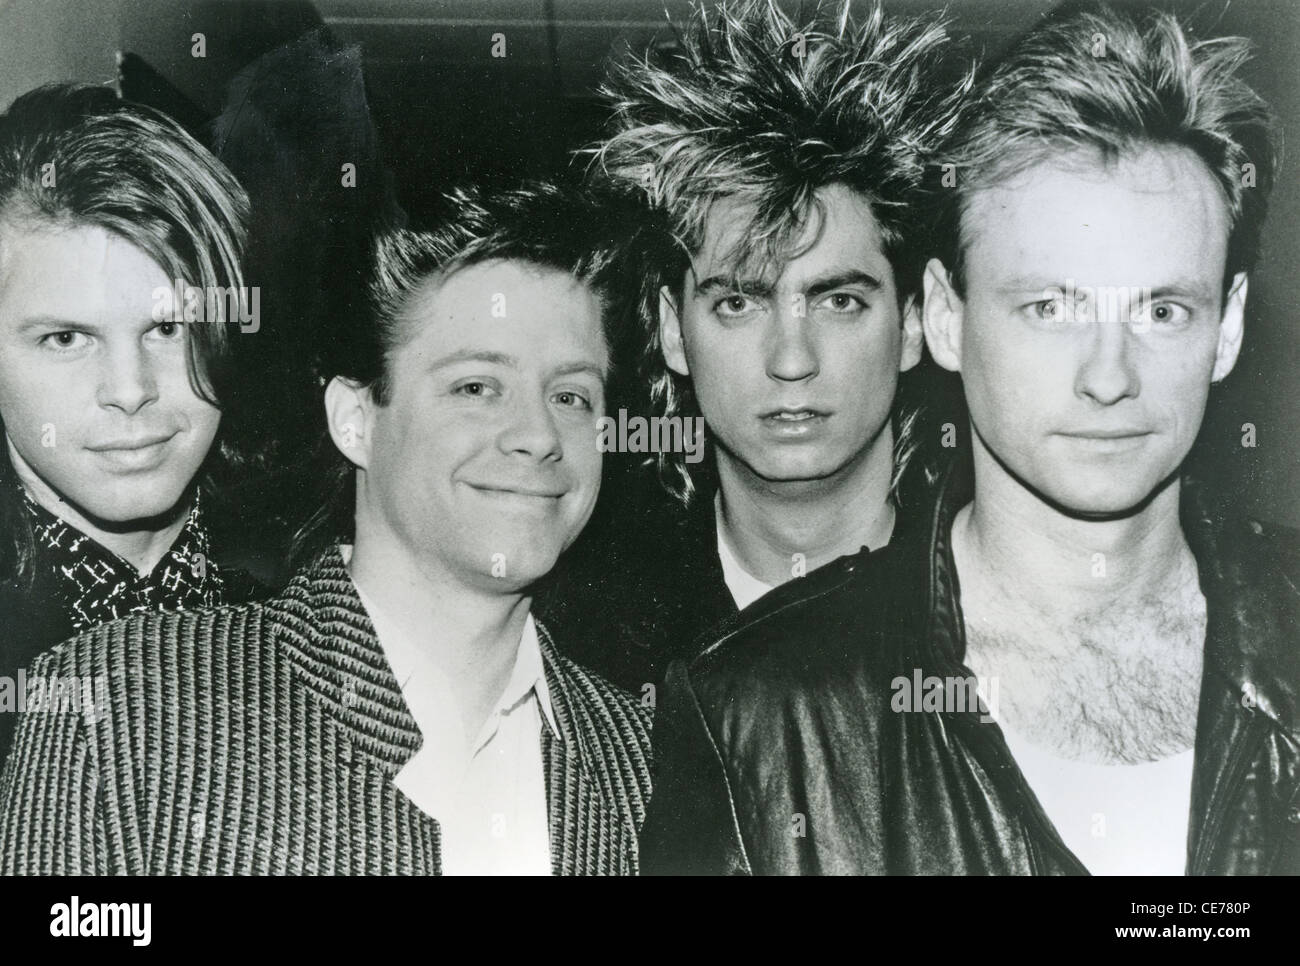 MISTER C  - Promotional photo of UK group about 1986 - Stock Image